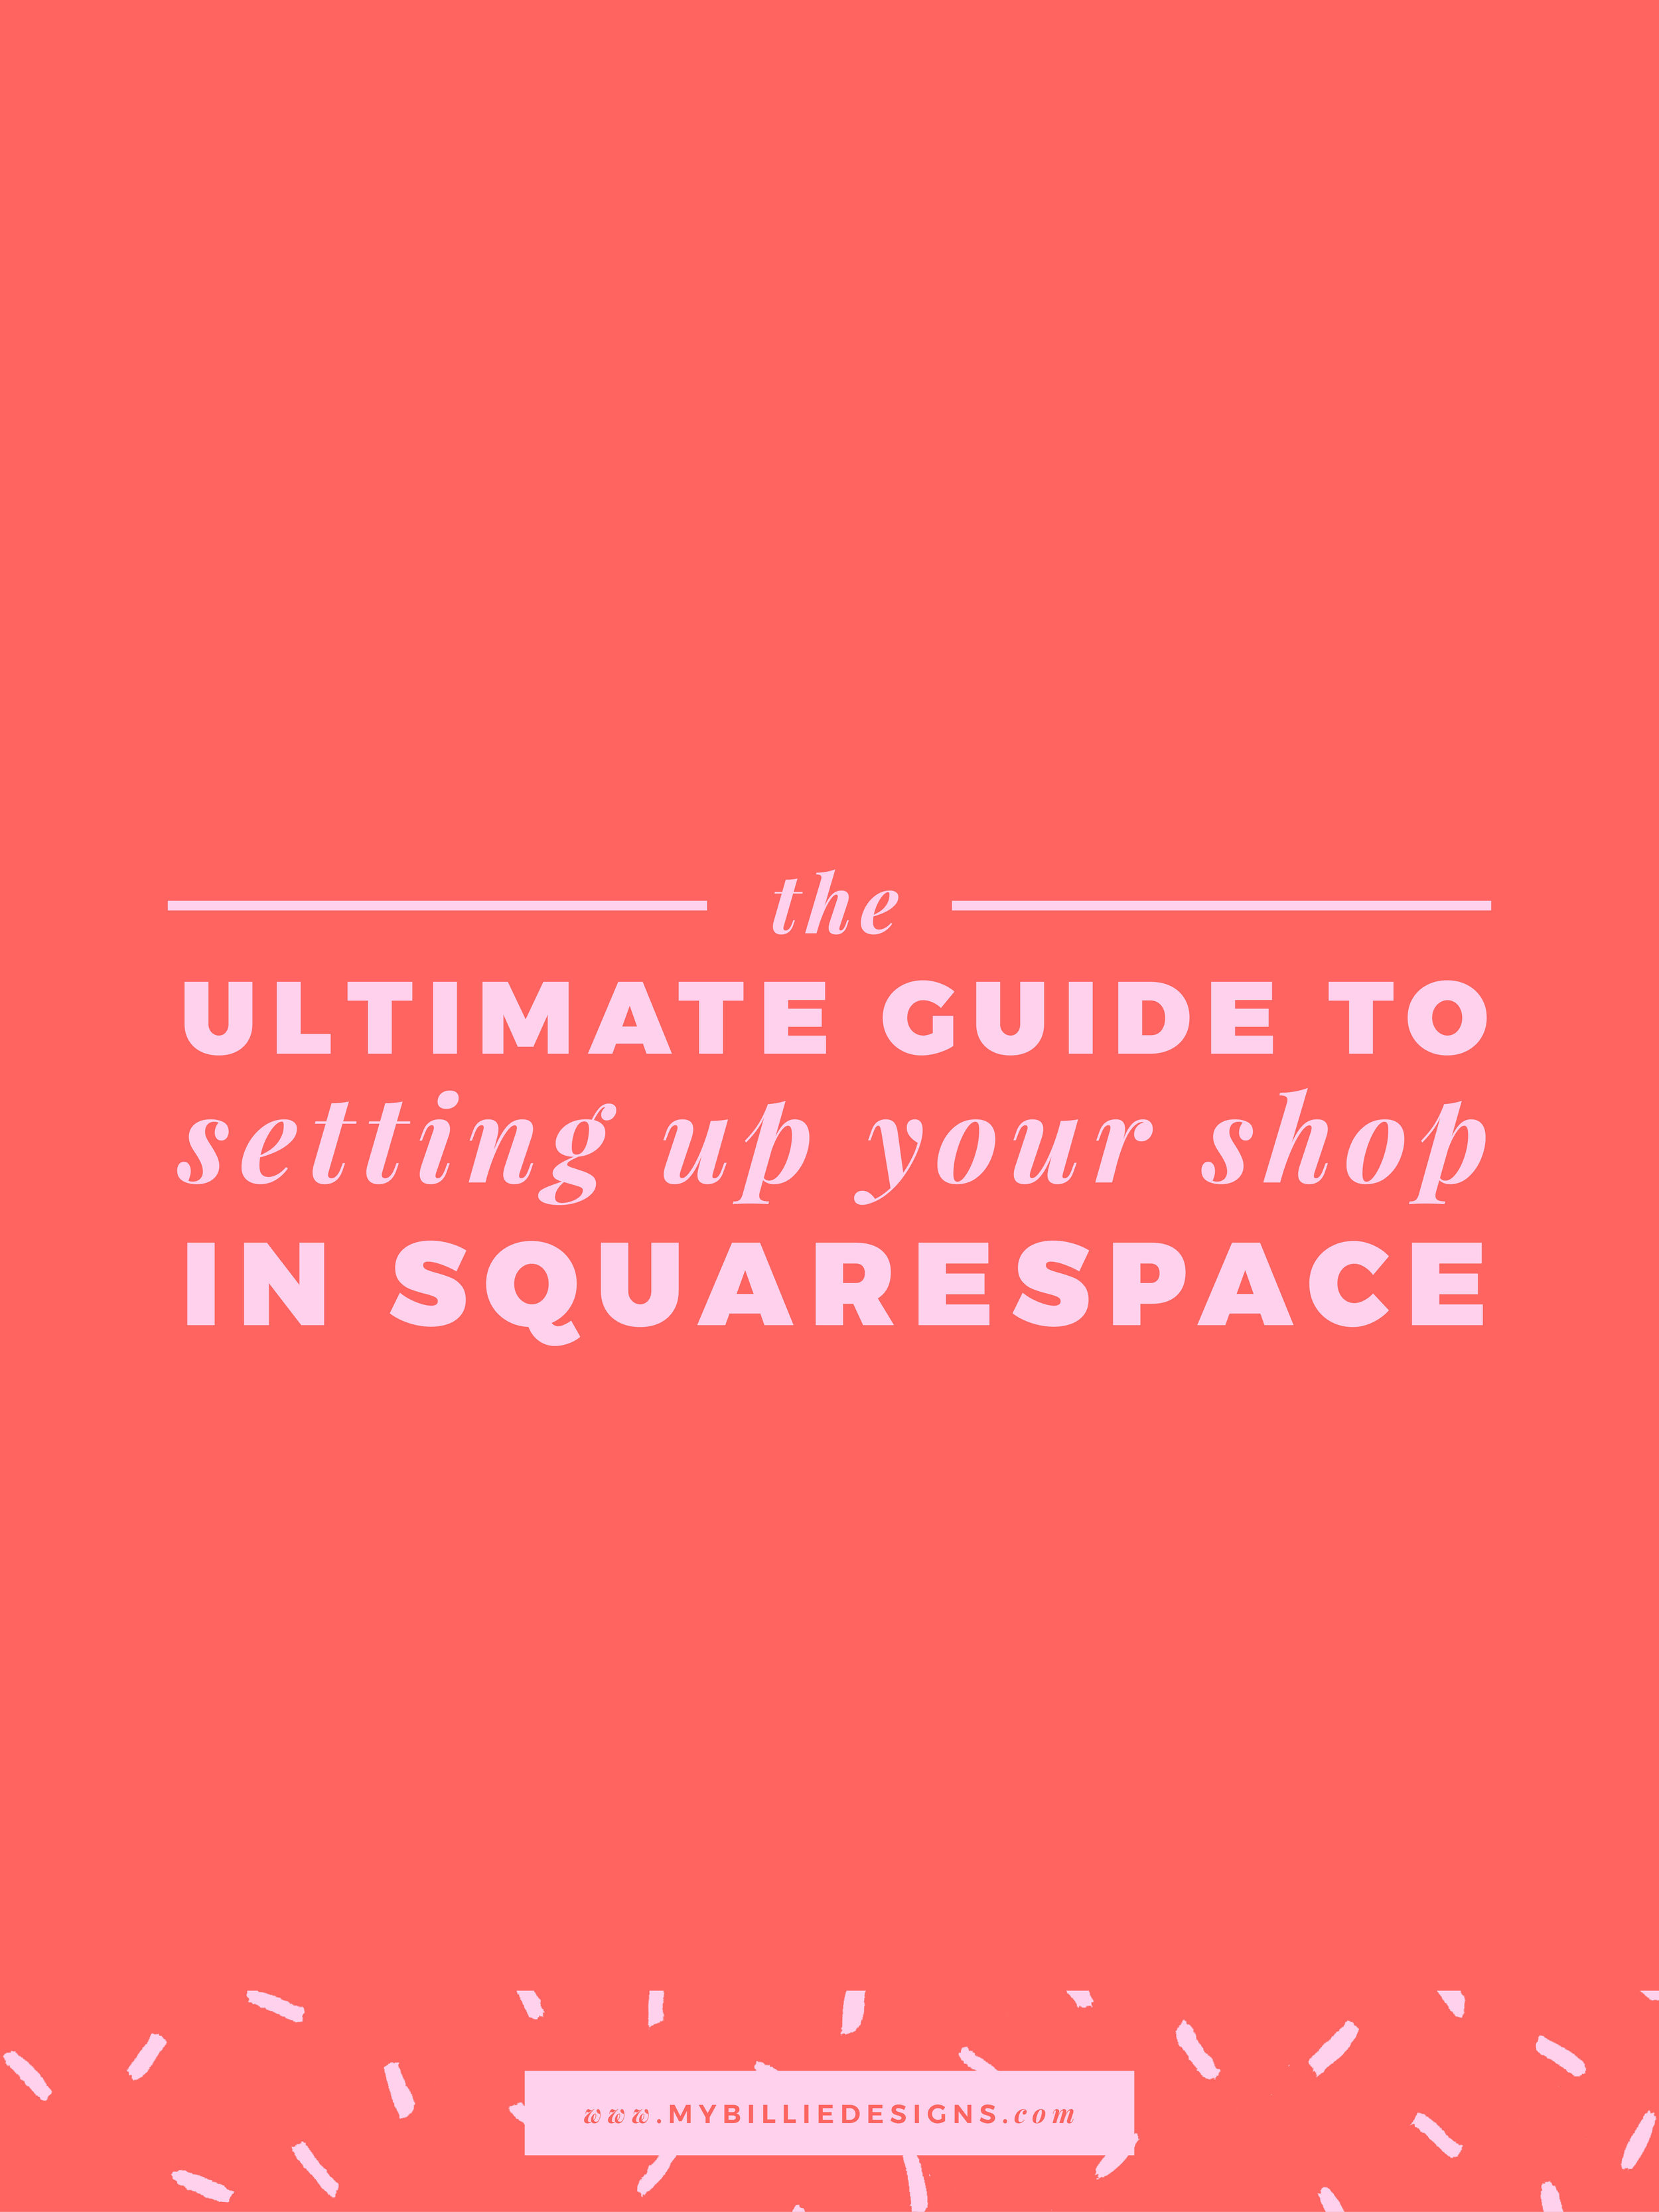 The Ultimate Guide To Setting Up Your Shop In Squarespace.jpg